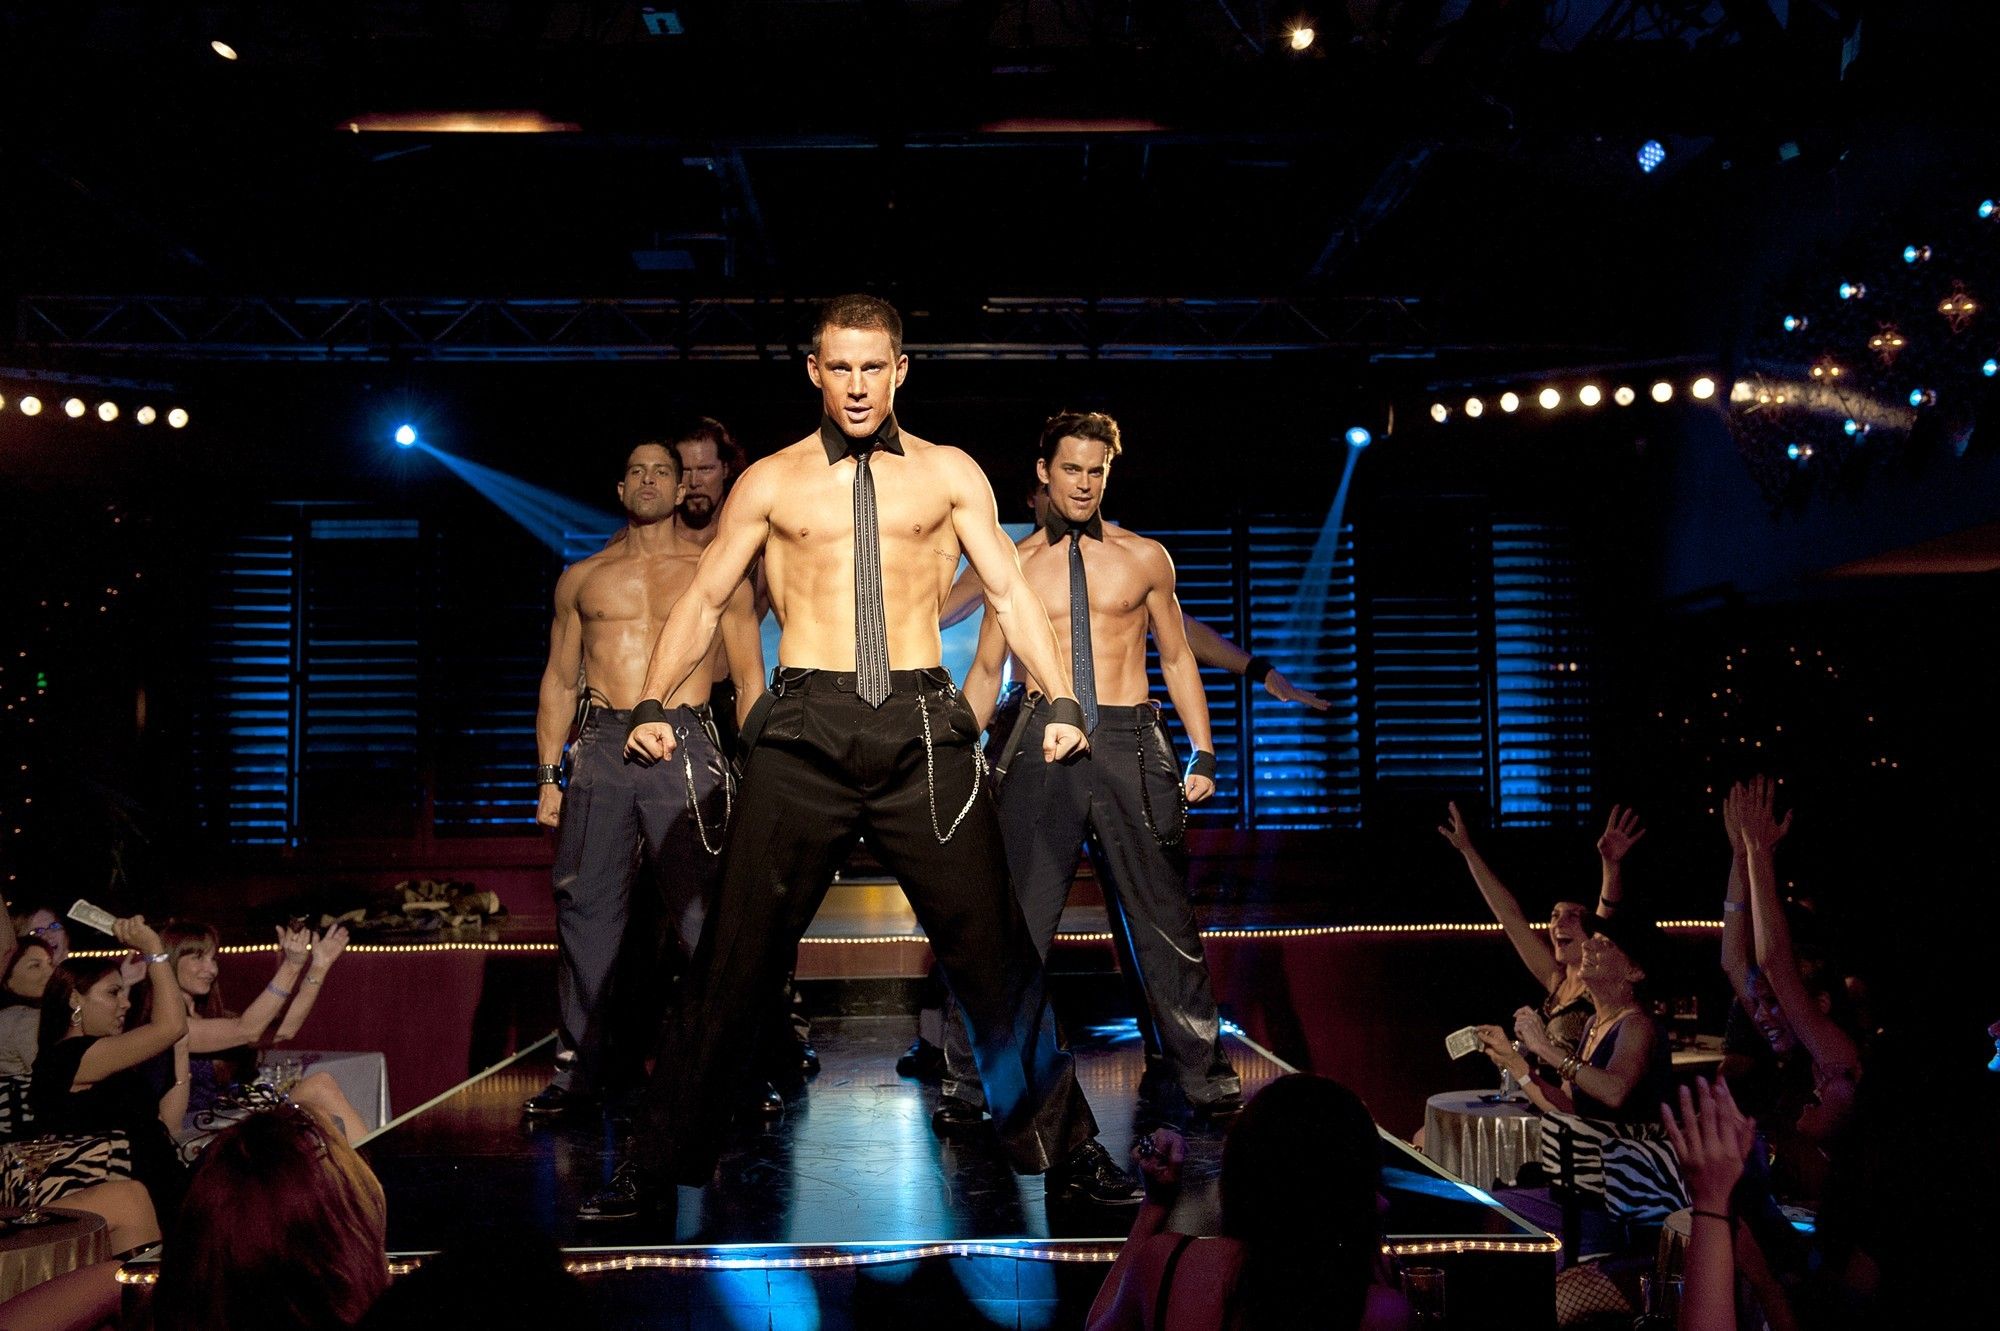 Channing Tatum Goes Nude in 'Magic Mike' Red Band Trailer